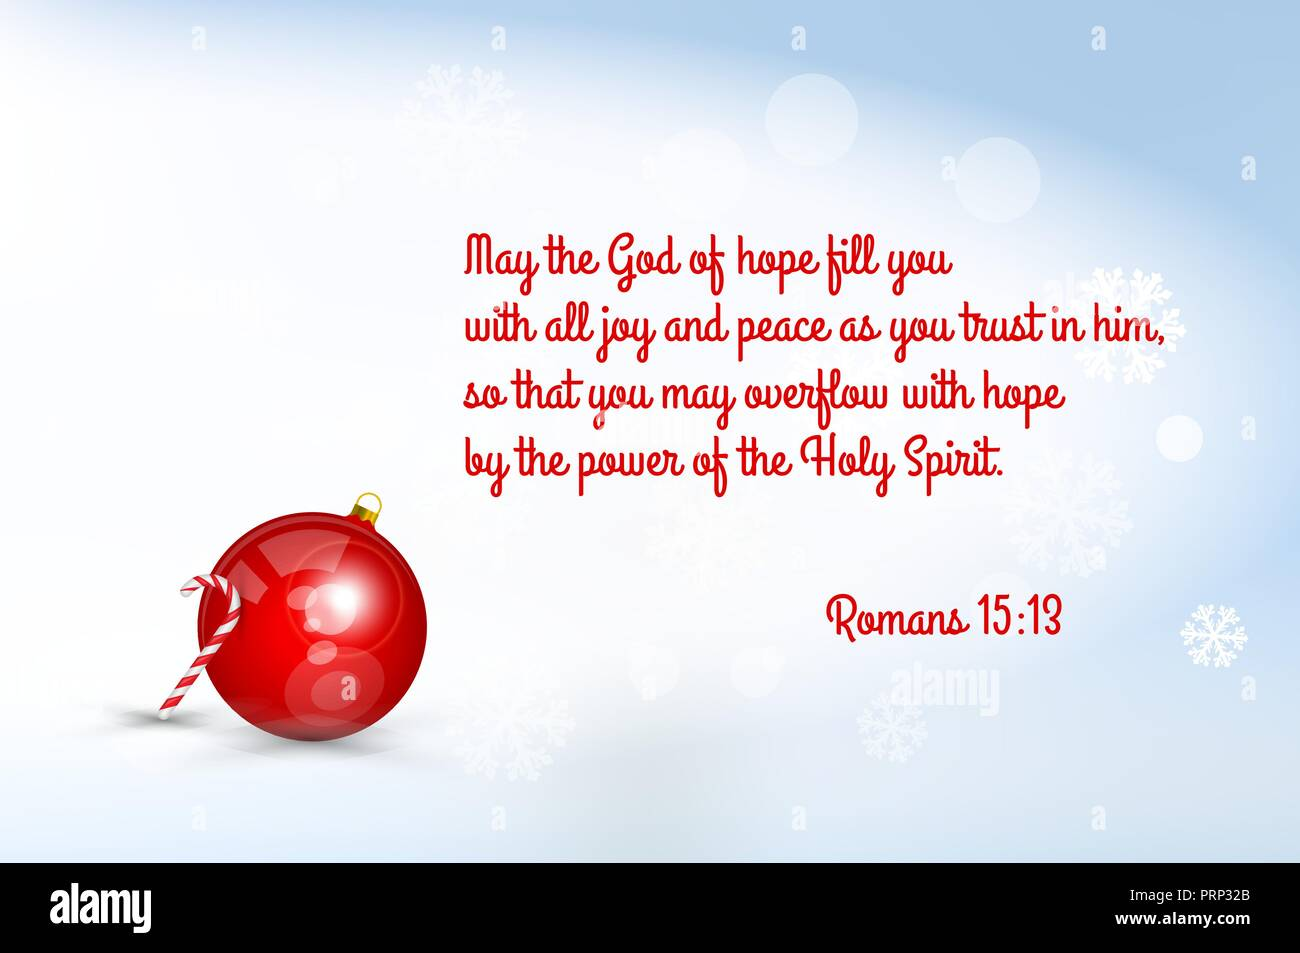 quote from holy bible merry christmas and happy new year design elements resource for creating postcards calendars or posters presentations or banners